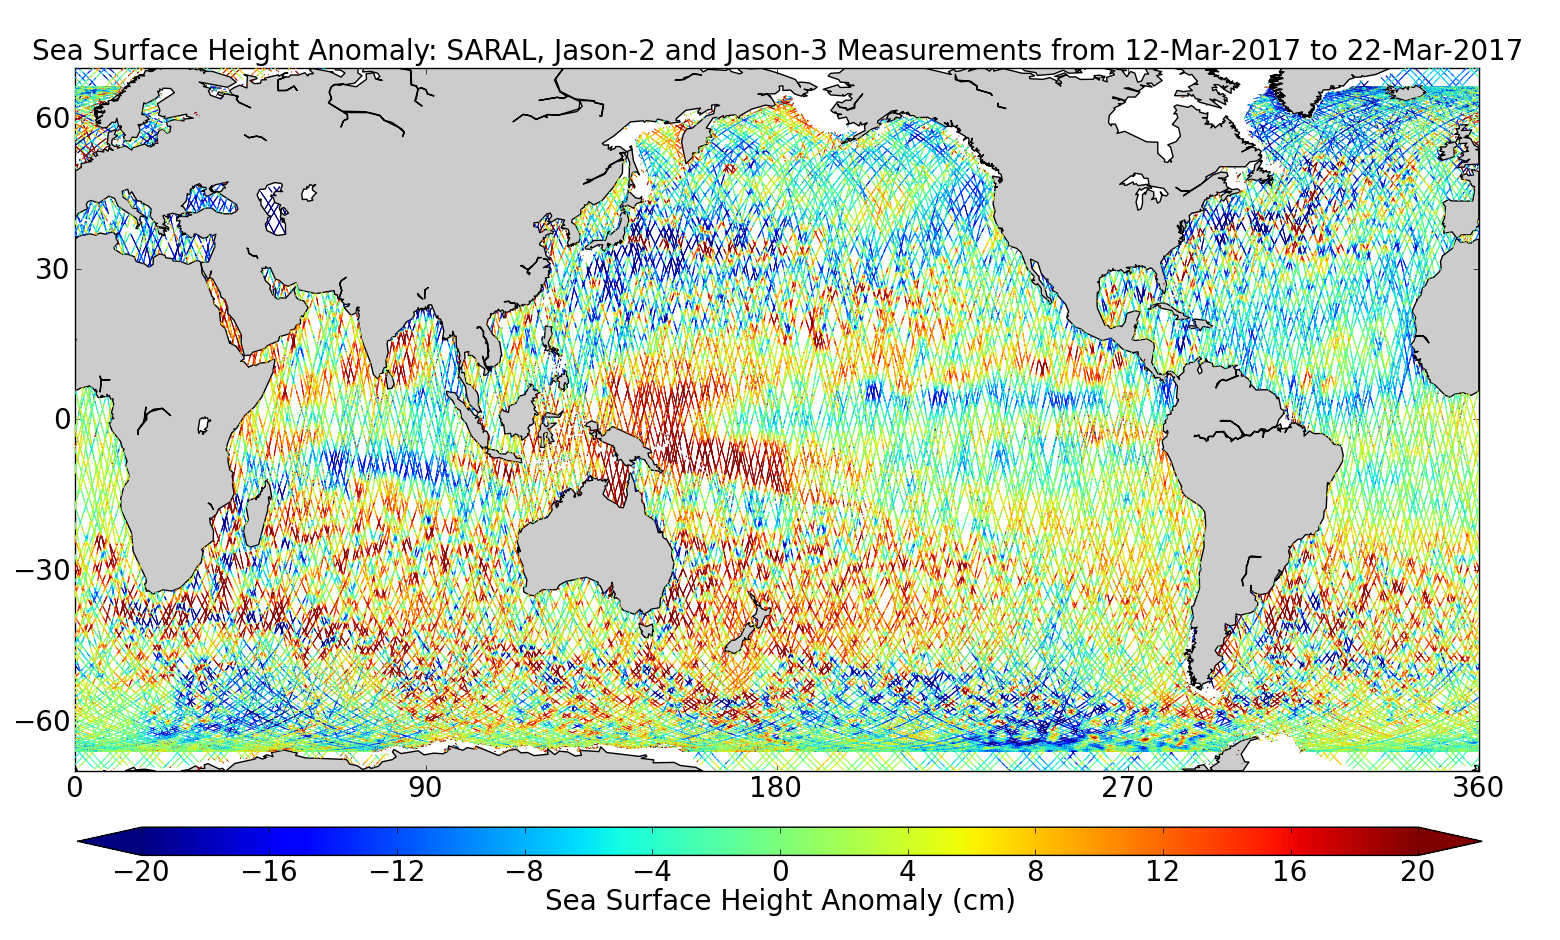 Sea Surface Height Anomaly: SARAL, Jason-2 and Jason-3 Measurements from 12-Mar-2017 to 22-Mar-2017